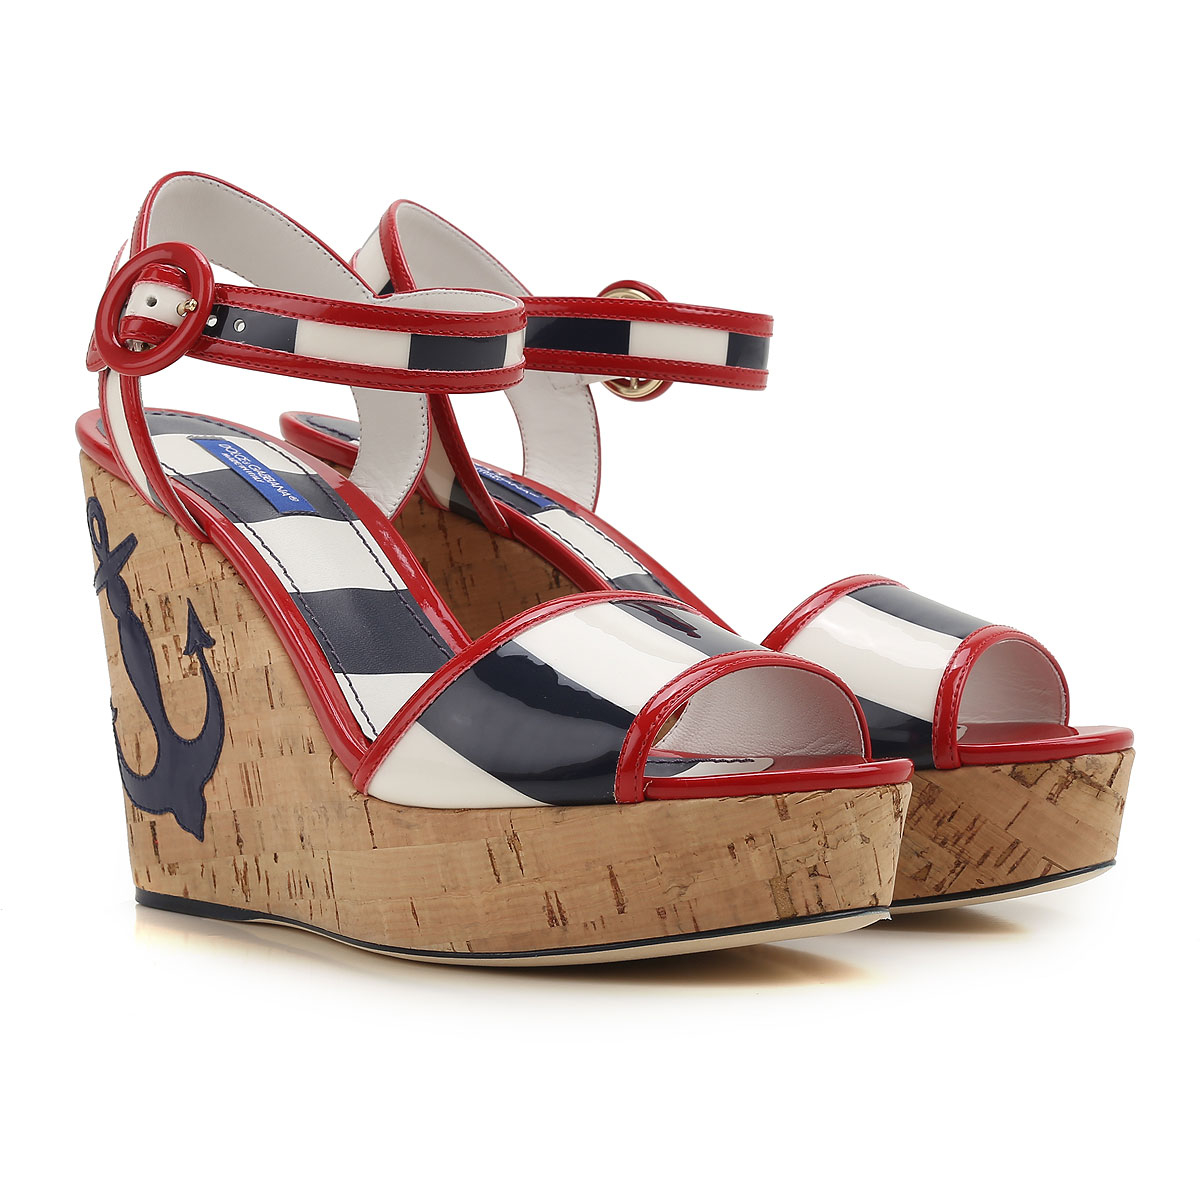 Dolce & Gabbana Wedges for Women On Sale in Outlet Red UK - GOOFASH